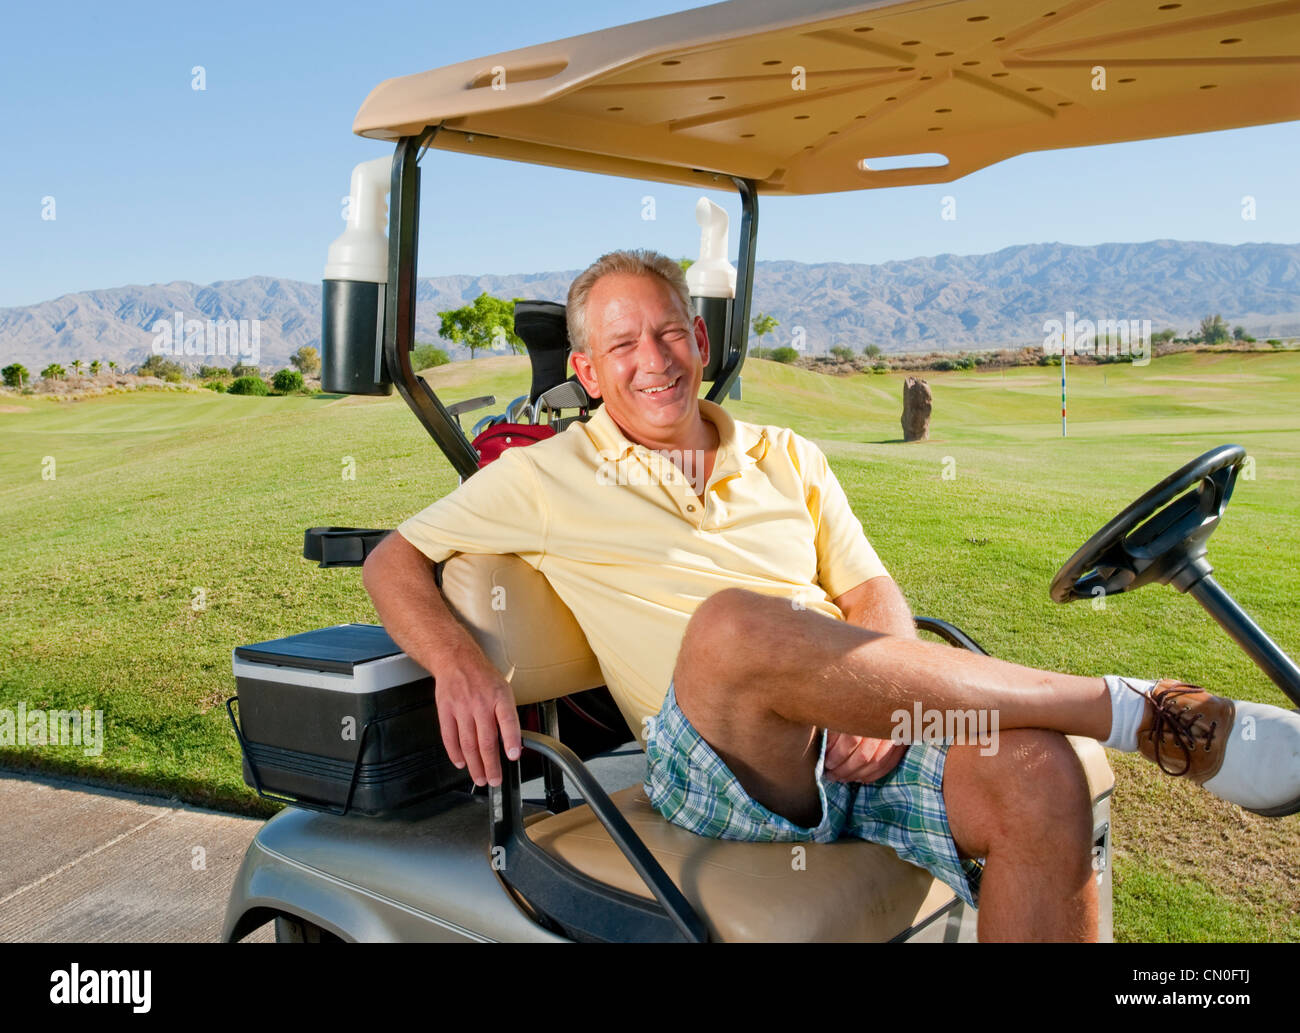 Man Relaxing In Golf Cart Stock Photos & Man Relaxing In Golf Cart on exciting golf, natural golf, lazy golf, peaceful golf, cute golf, captain kangaroo golf, playing golf,